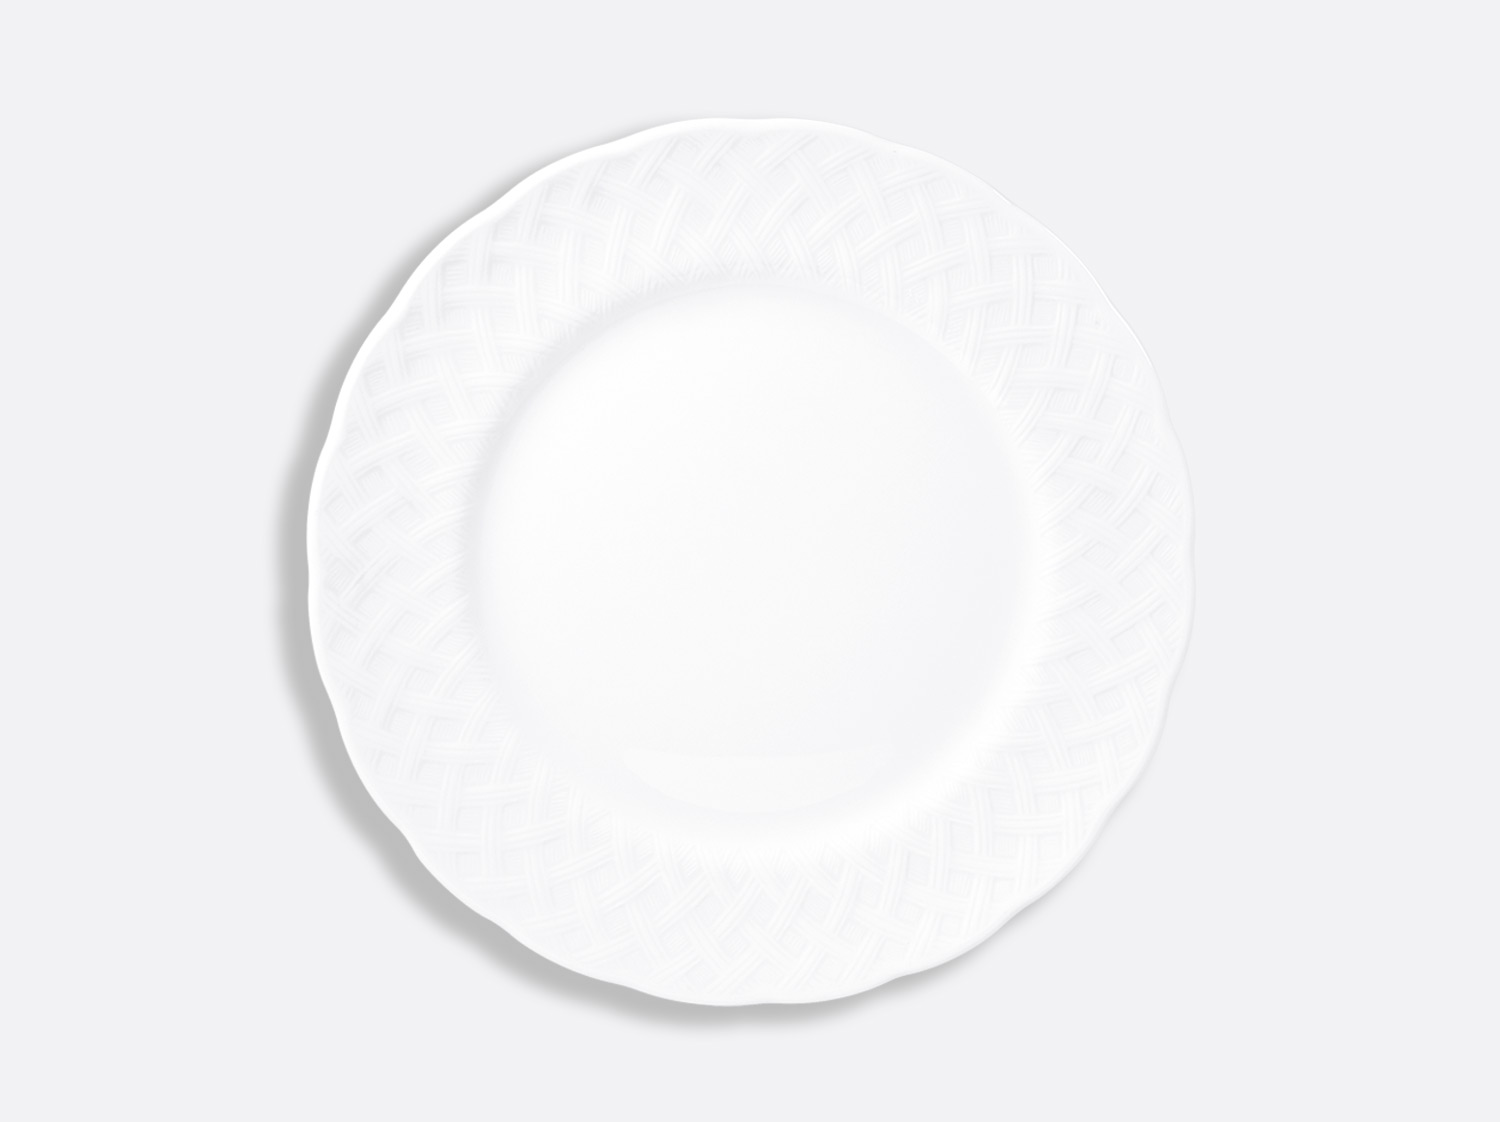 Assiette plate 26 cm en porcelaine de la collection OSIER BLANC Bernardaud